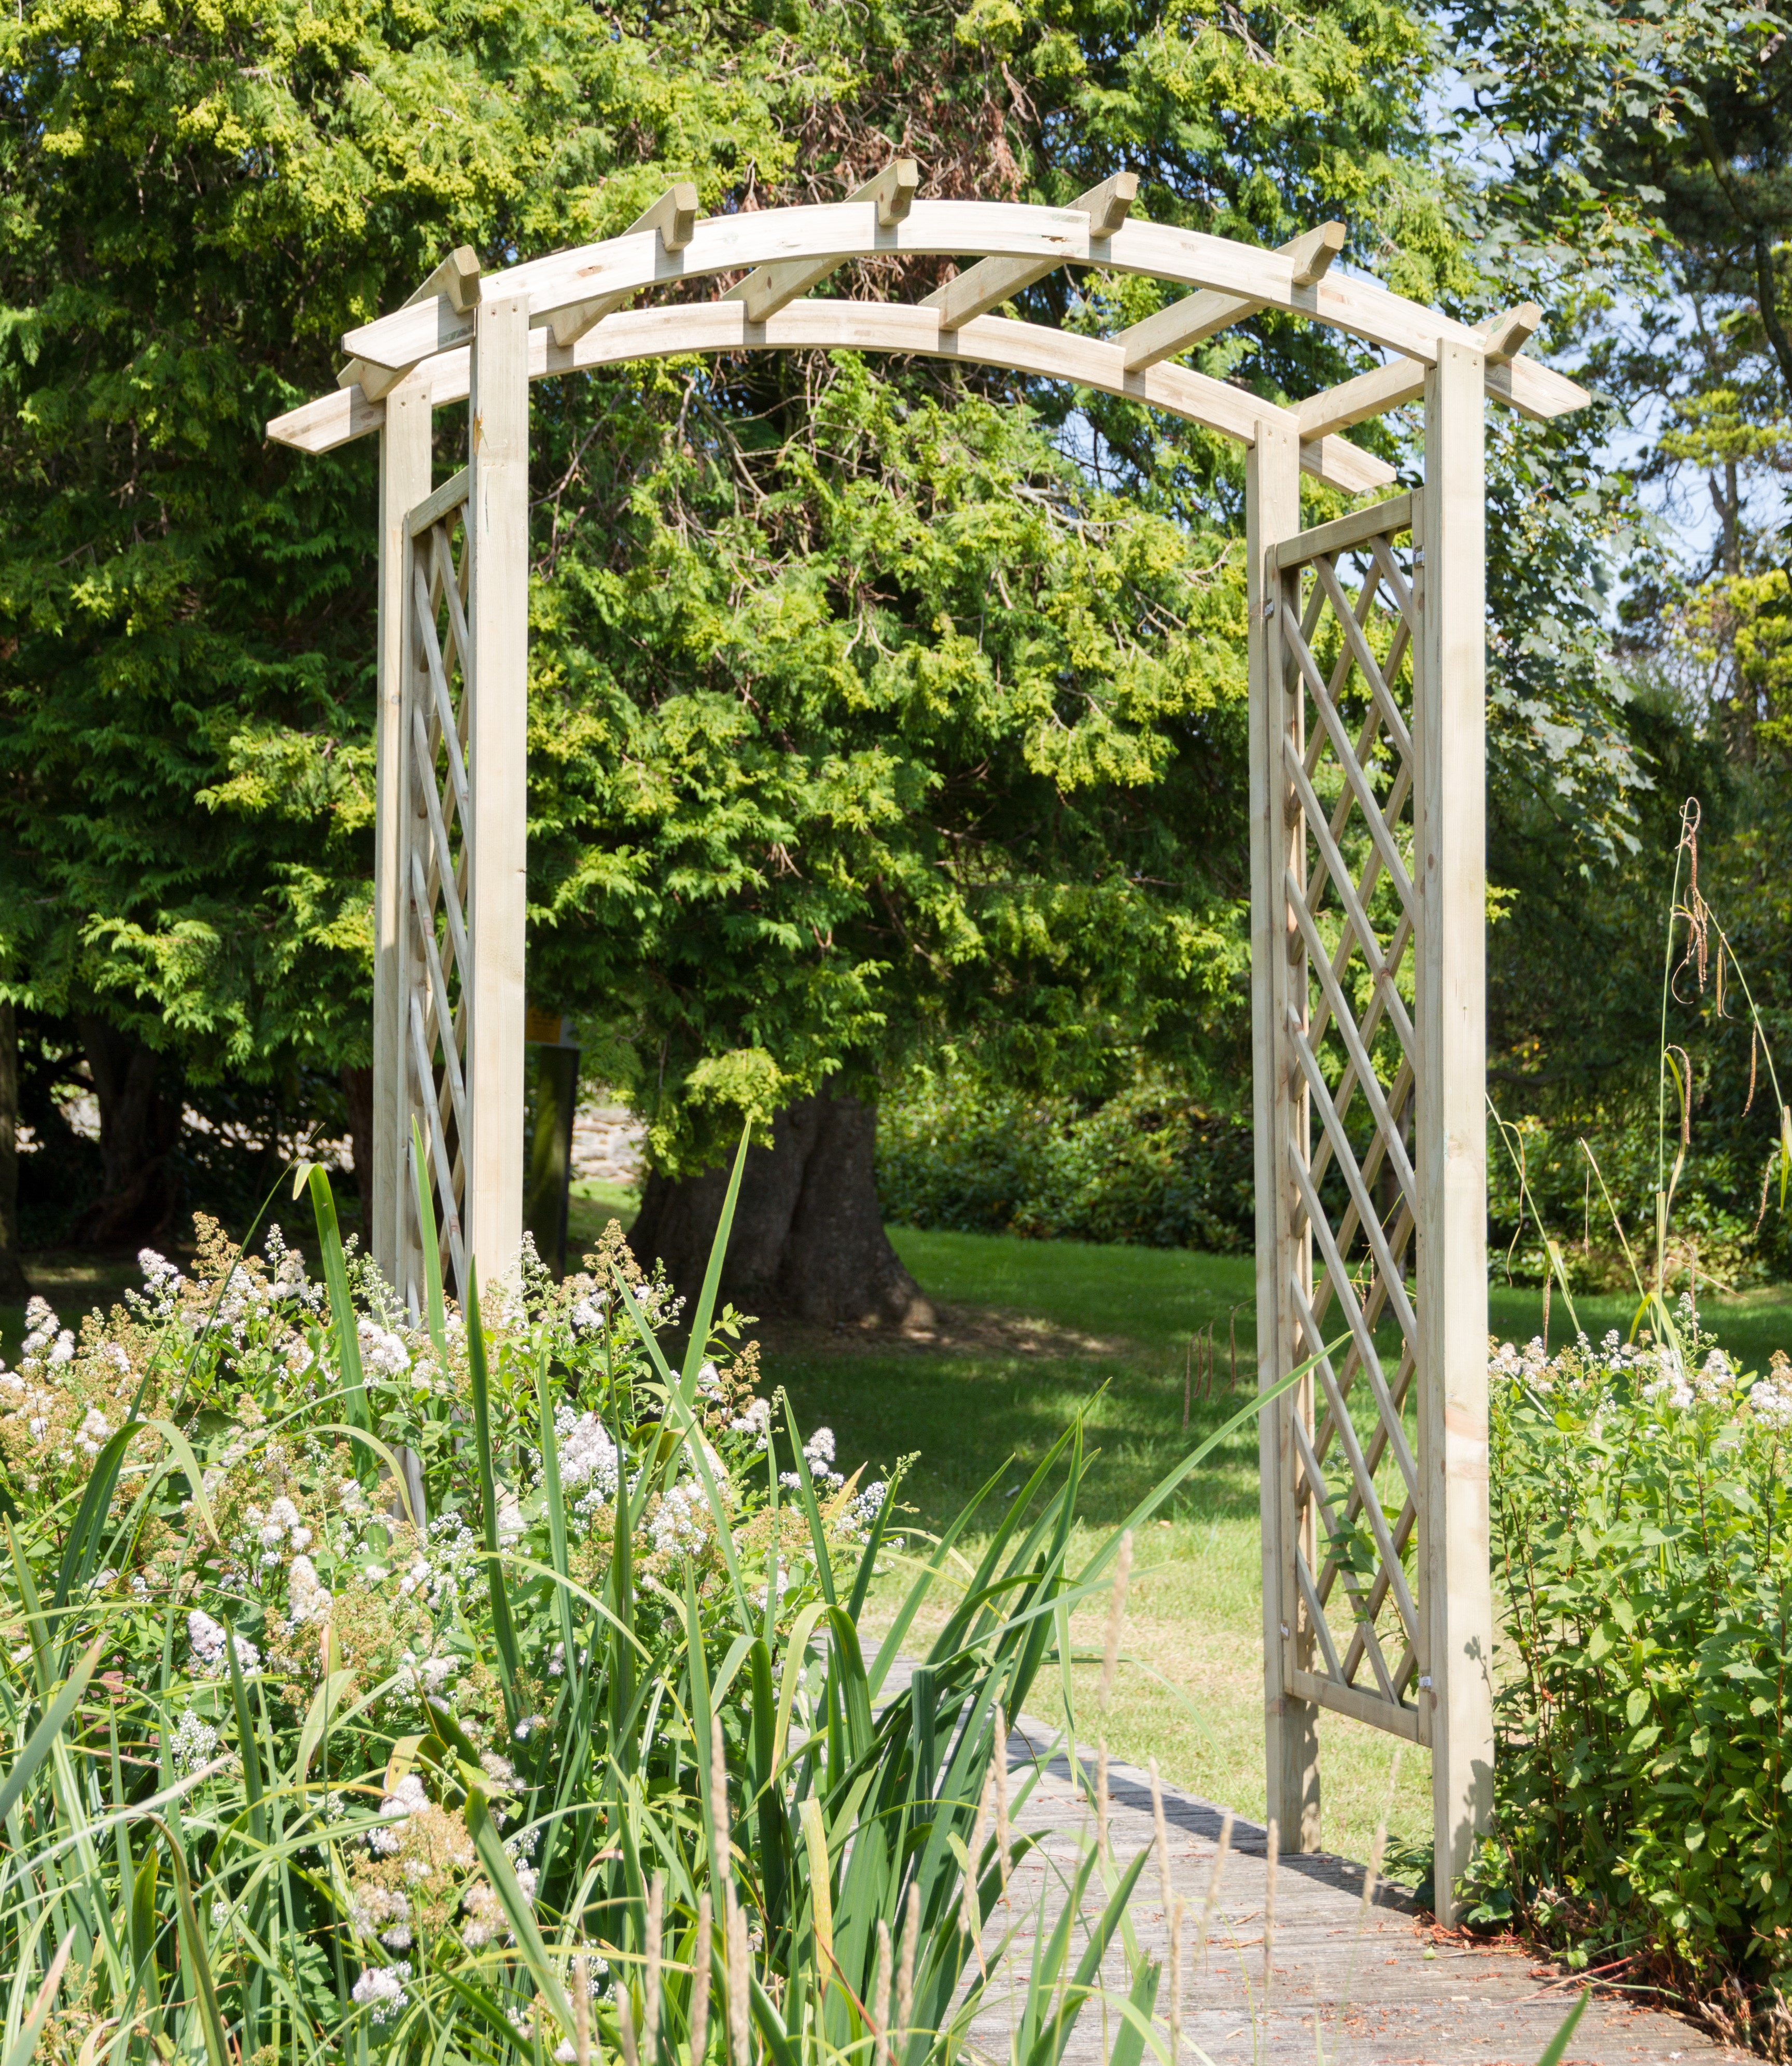 NEW DARIA ARCH WOODEN PRESSURE TREATED (1.9 x 0.9 x 2.4m)